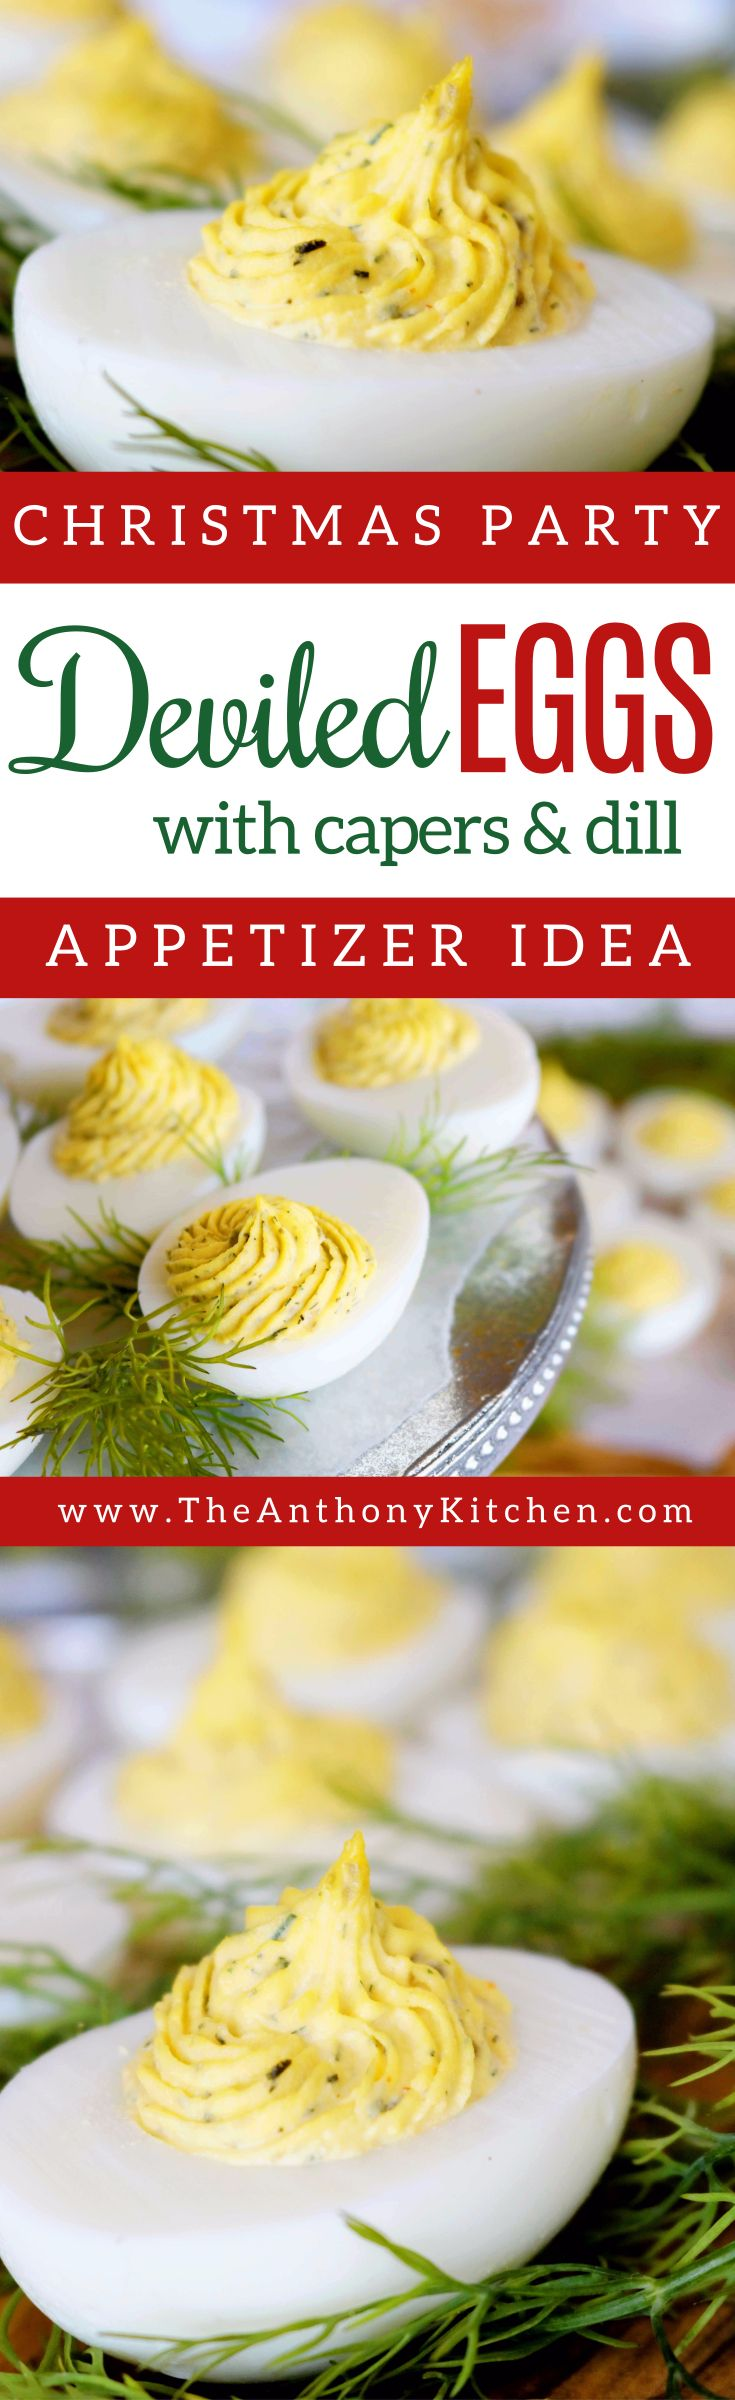 Deviled Egg Recipe | A recipe for Southern deviled eggs, featuring capers, tarragon vinegar, and Dijon mustard to givethis appetizer a unique twist | #partyfood #fingerfood #fancyappetizers #potluckpartyfood